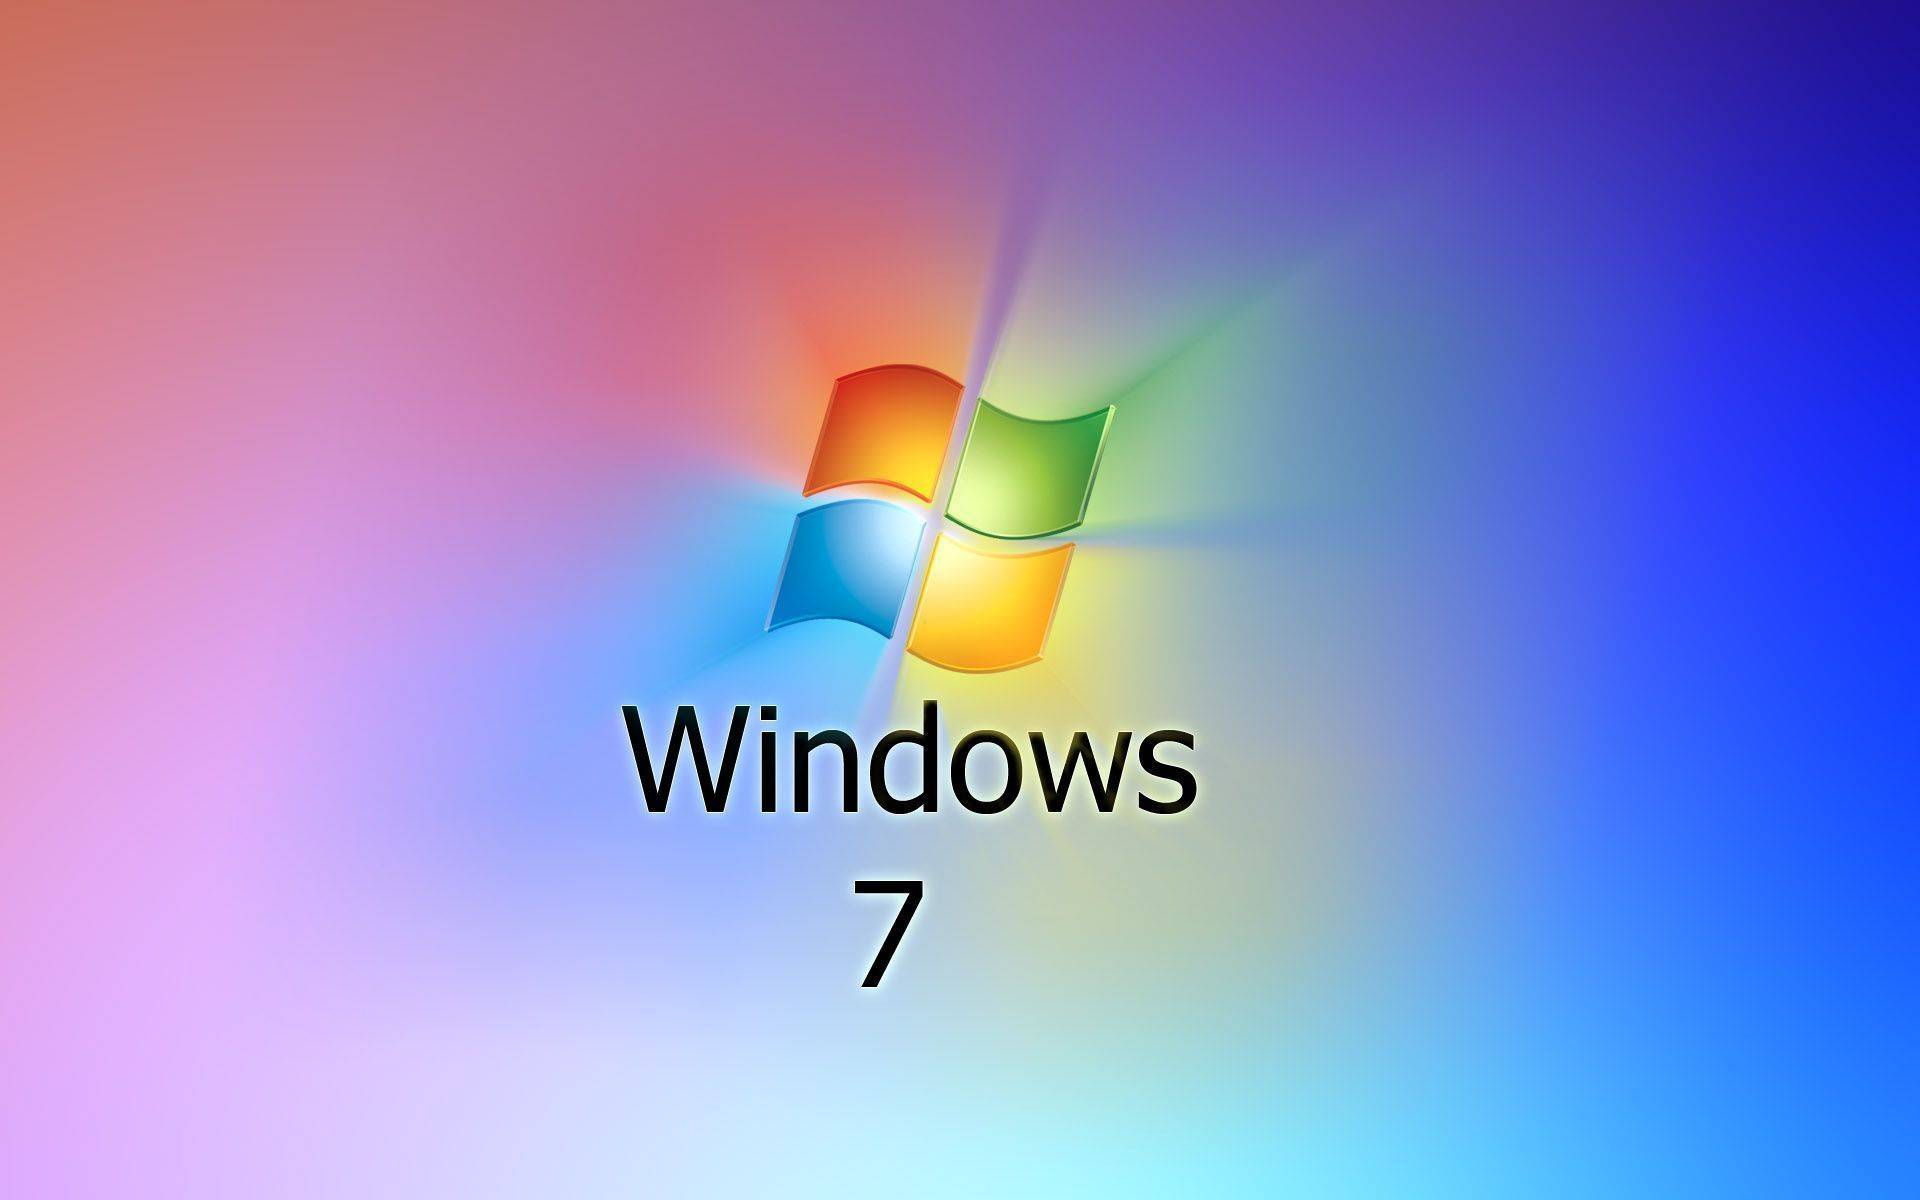 Desktop Wallpaper Windows 7 Free Download